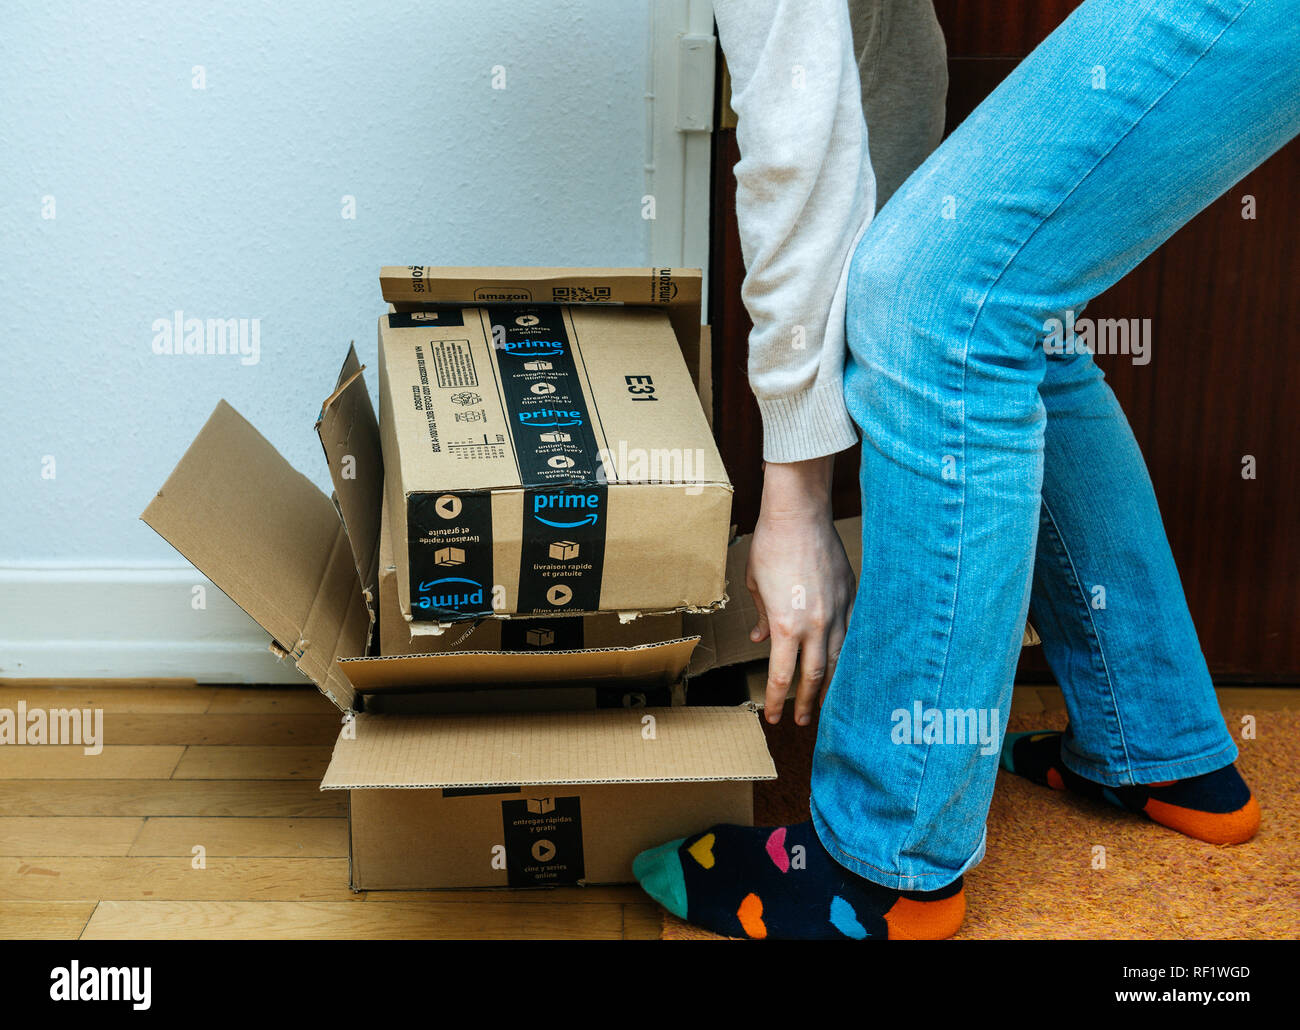 Amazon Usa Livraison France Amazon Boxes Door Stock Photos Amazon Boxes Door Stock Images